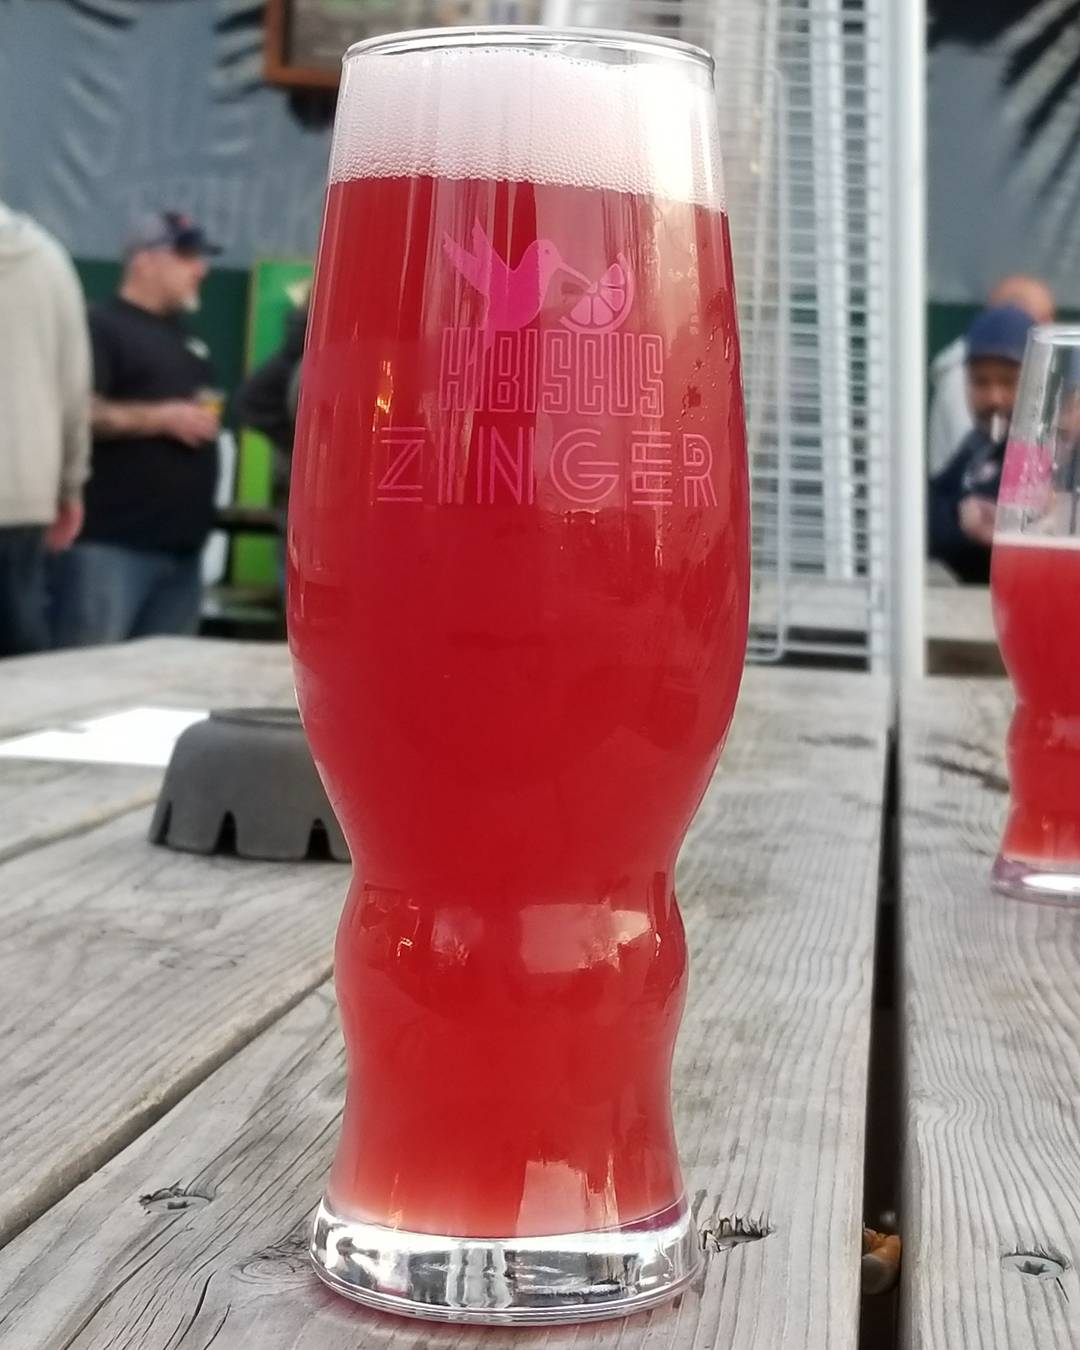 Hibiscus Zinger | Armadillo Ale Works - This seasonal wheat ale comes out of the can bright pink and ready to tickle your palate with its blend of hibiscus (duh), ginger and orange and lemon peel. At 5.5% abv, it even has a bit more kick than you might expect, but that's all part of the fun of the Zinger. Pour one out and get ready for people to ask,